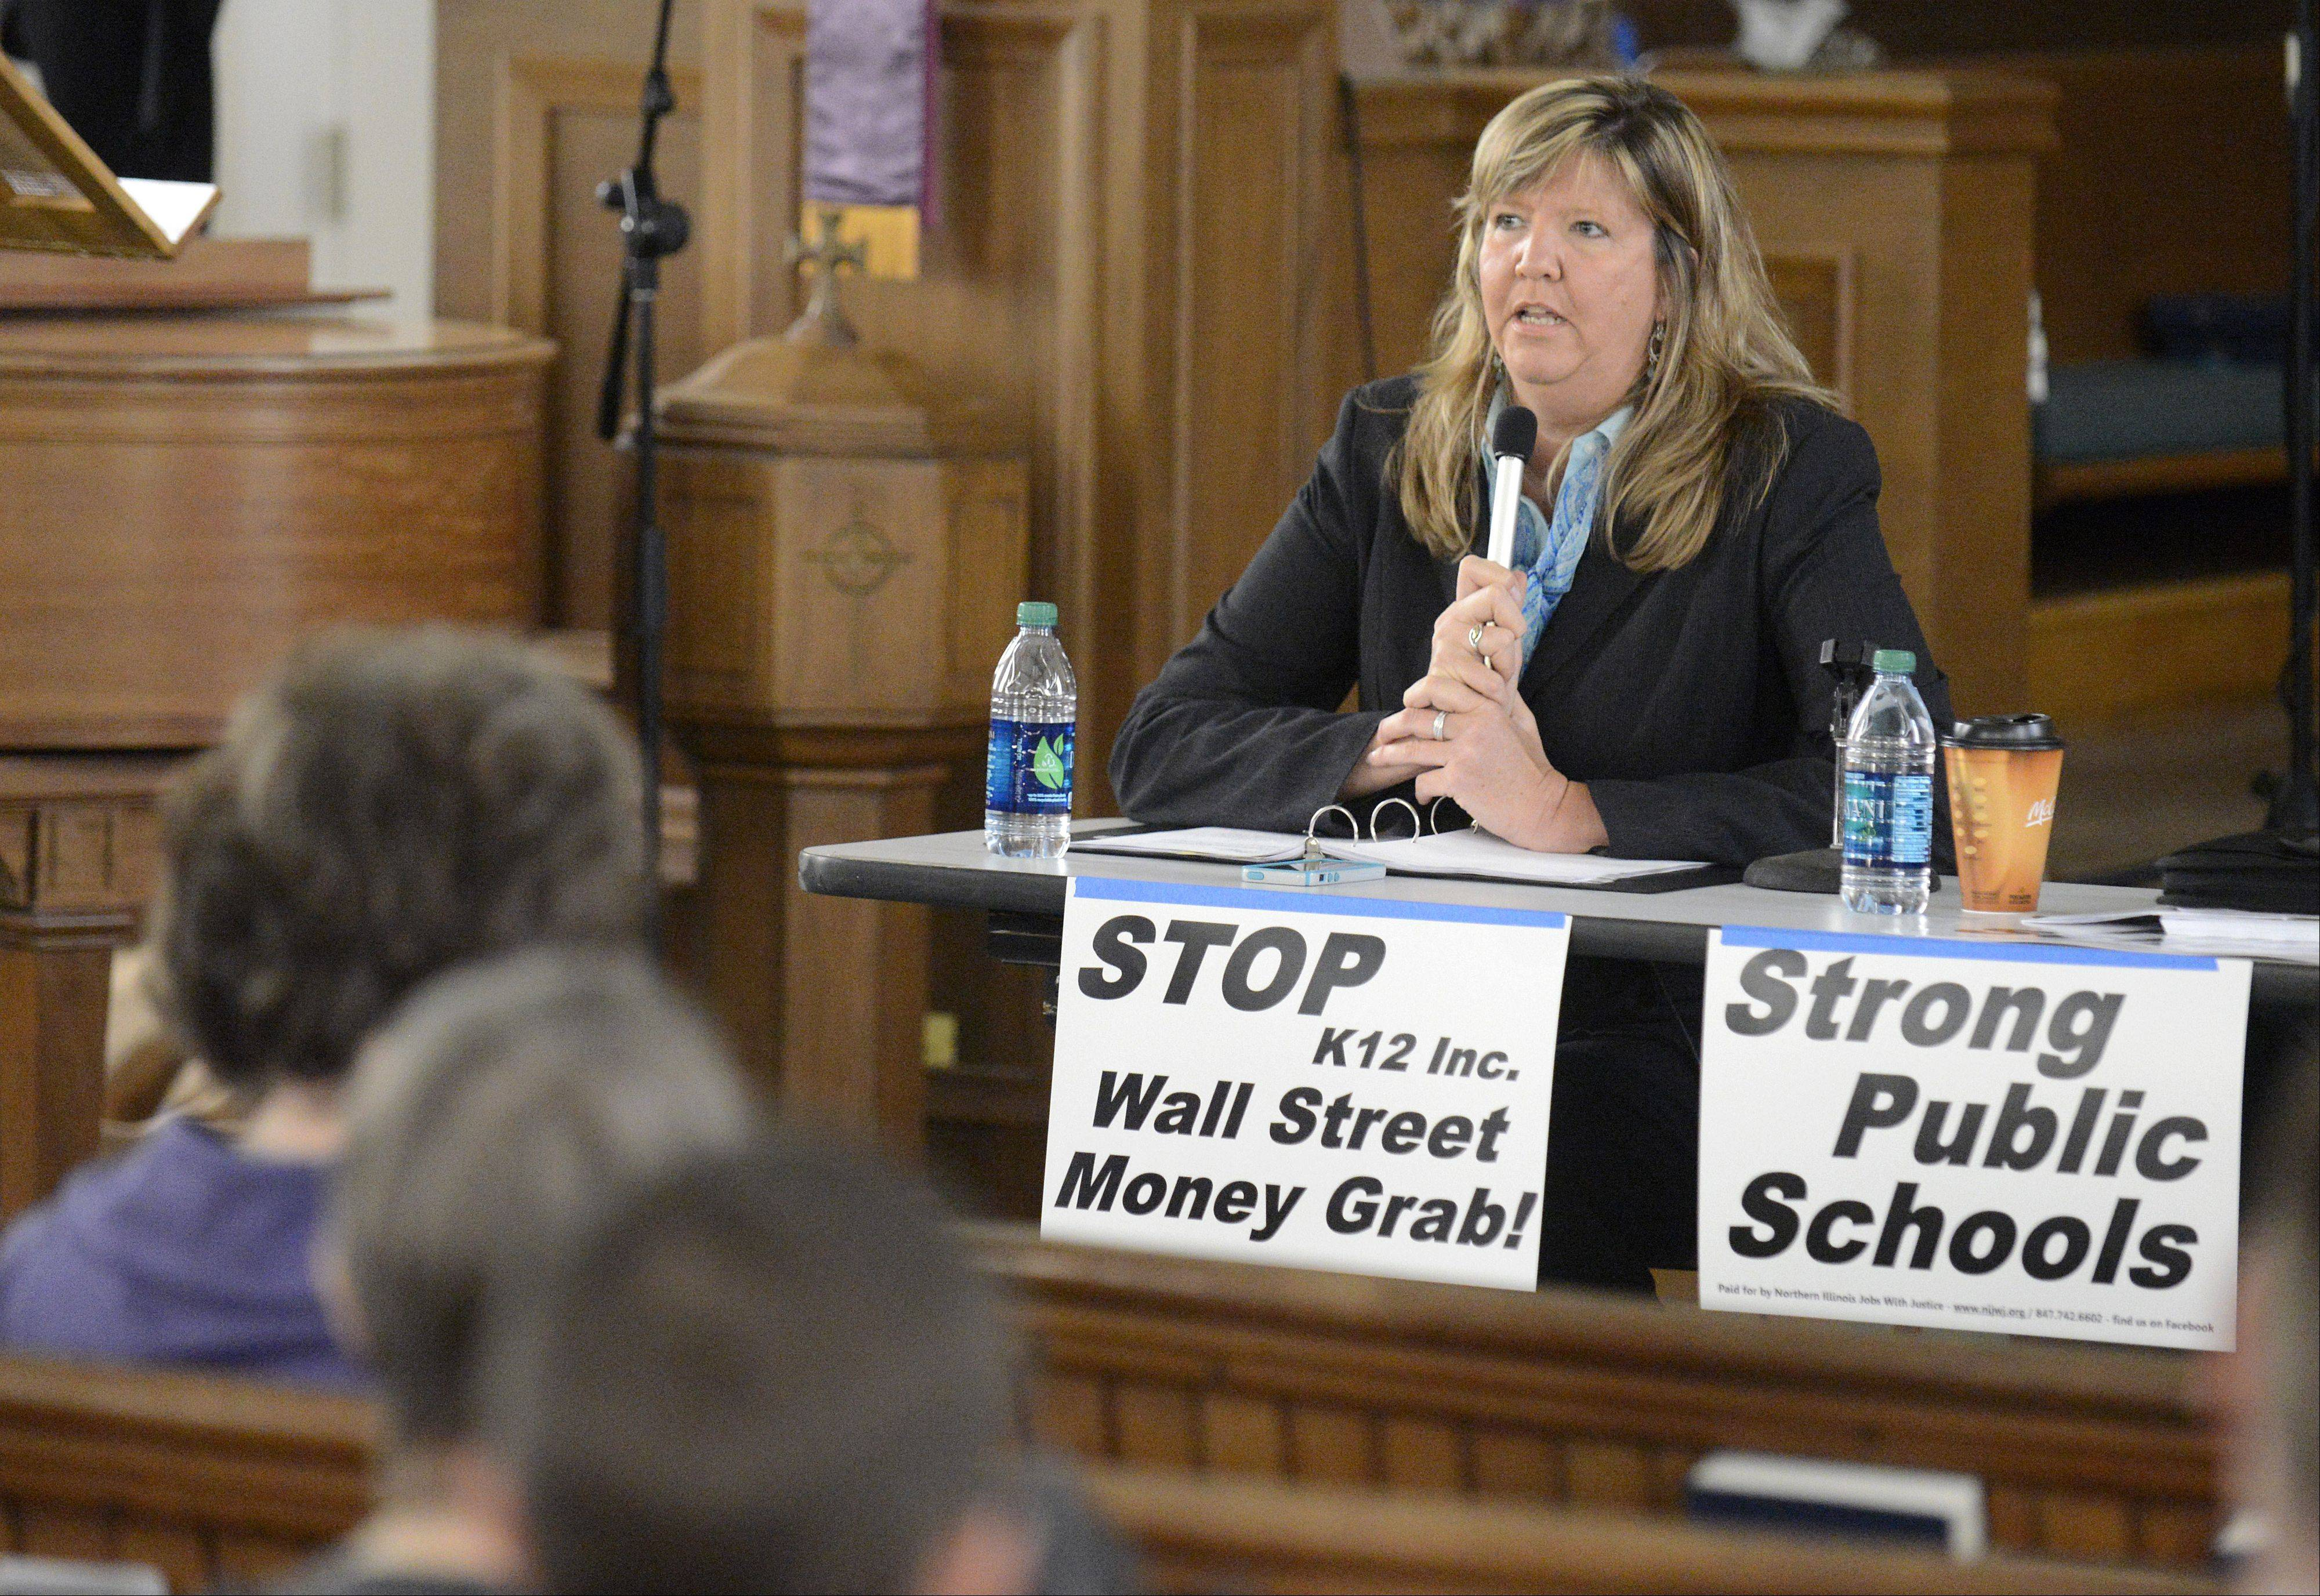 Laura Stoecker/lstoecker@dailyherald.comTennessee State Rep. Gloria Johnson talks about how the online education company, K12 Inc. is failing students in her state during an informational meeting hosted by Northern Illinois Jobs With Justice at the First Congregational Church of Geneva Sunday.